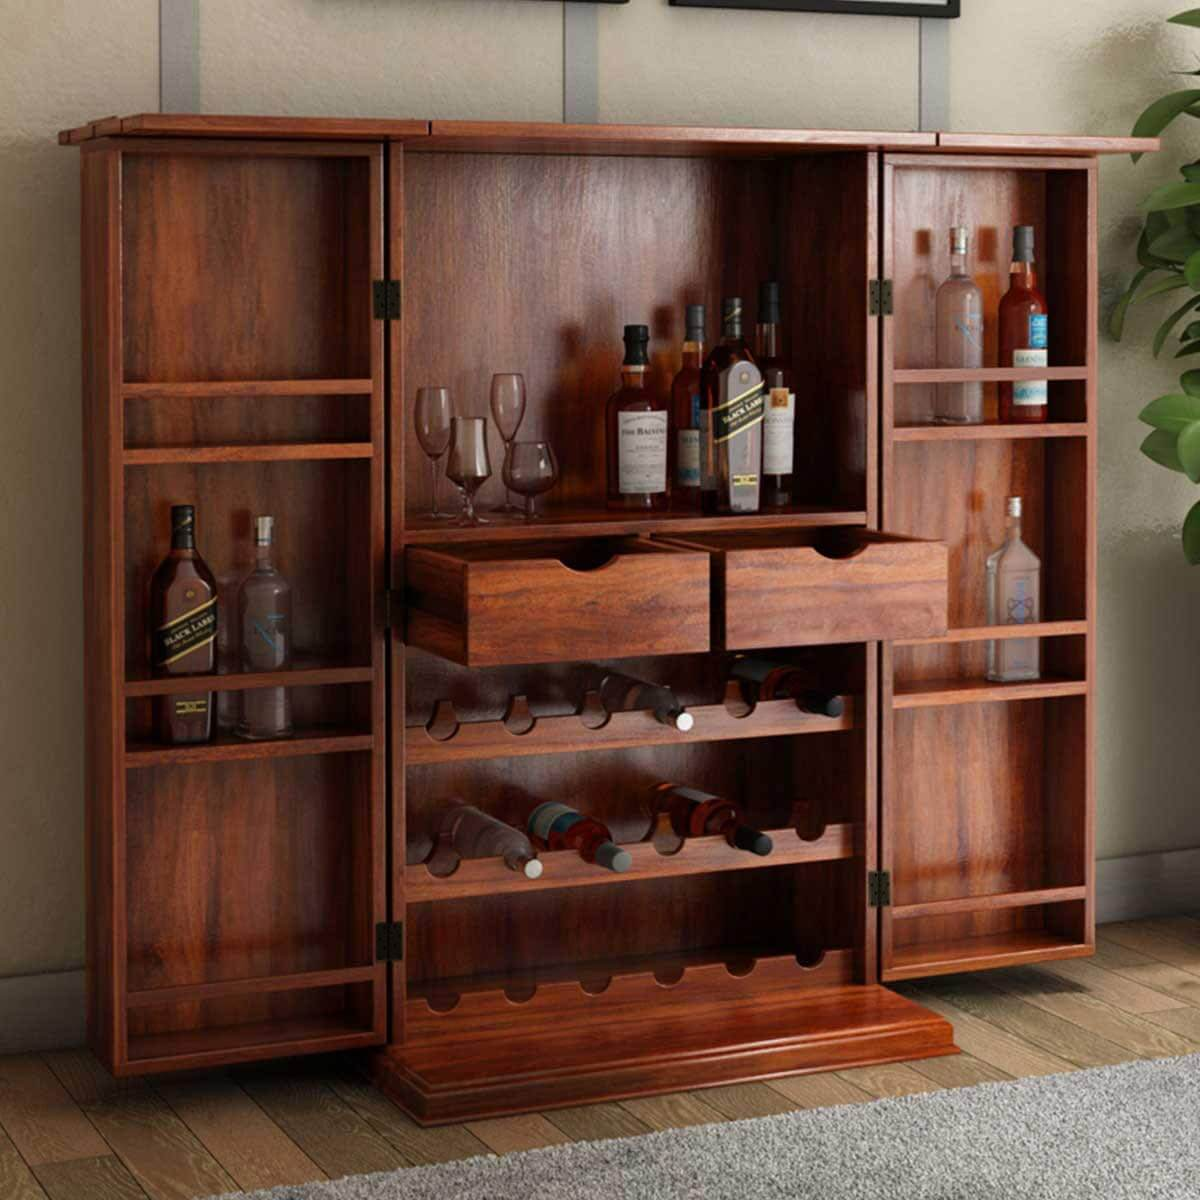 wood glass bar discount of rustic vintage furniture wooden rack portable wine cabinets interesting full with fridge hutch cabinet white storage home size mini